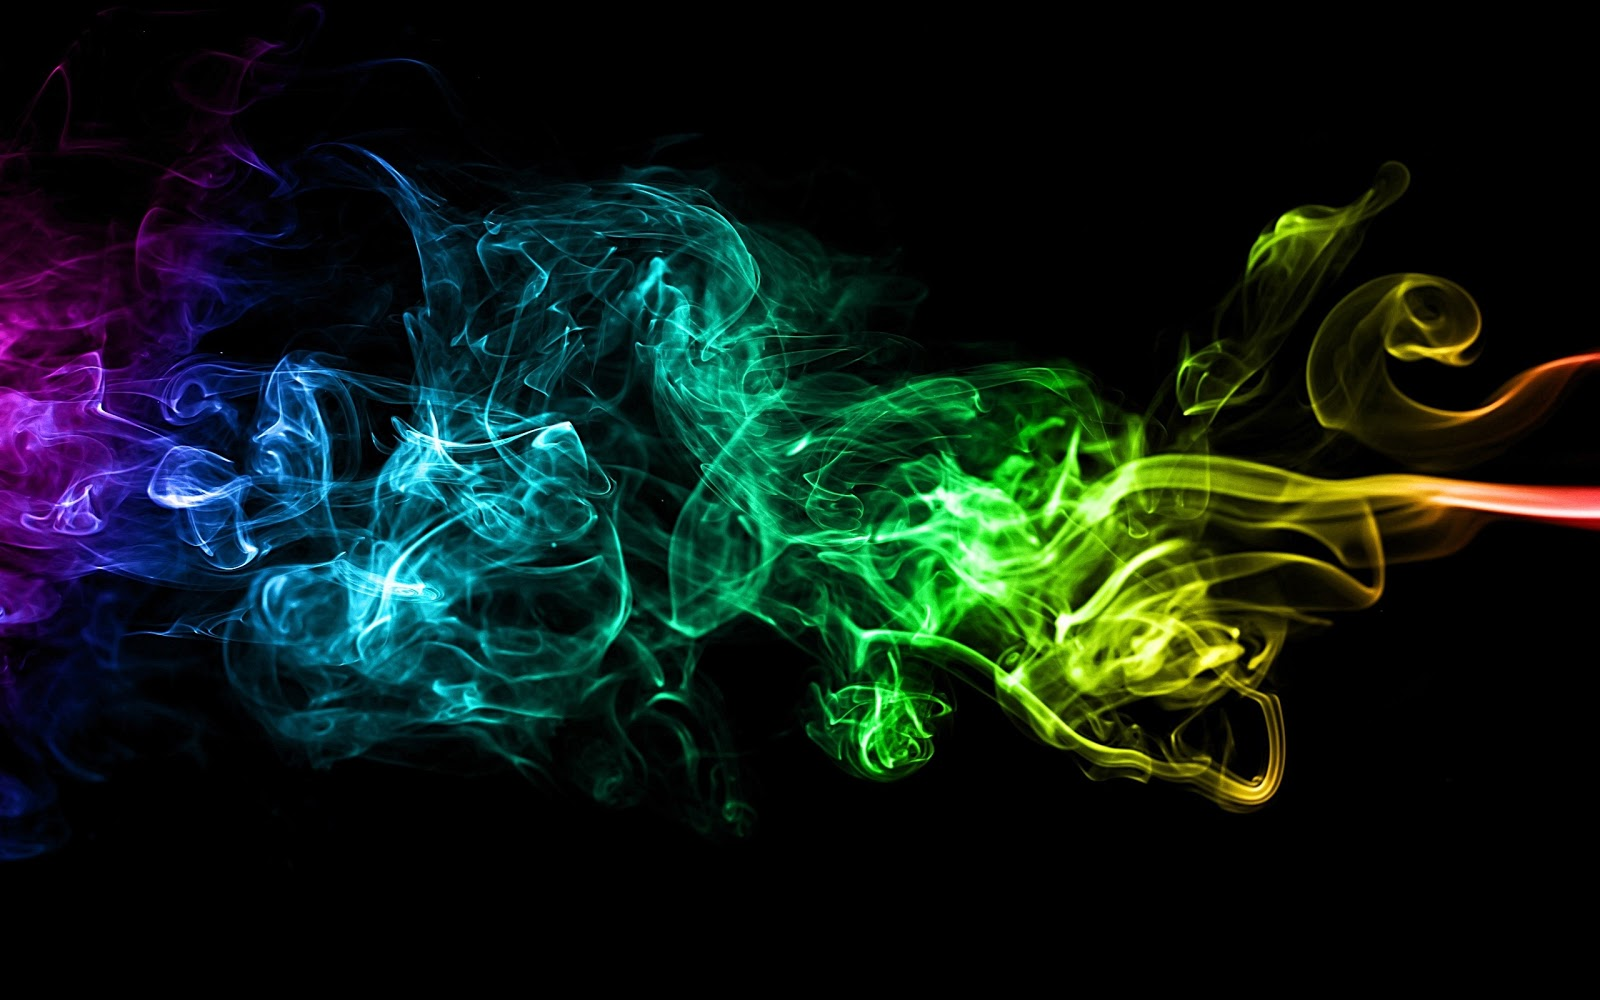 Smoke Photo Hd Wallpaper Freehdwallcom Wallpapers HD Wallpaper 1600x1000